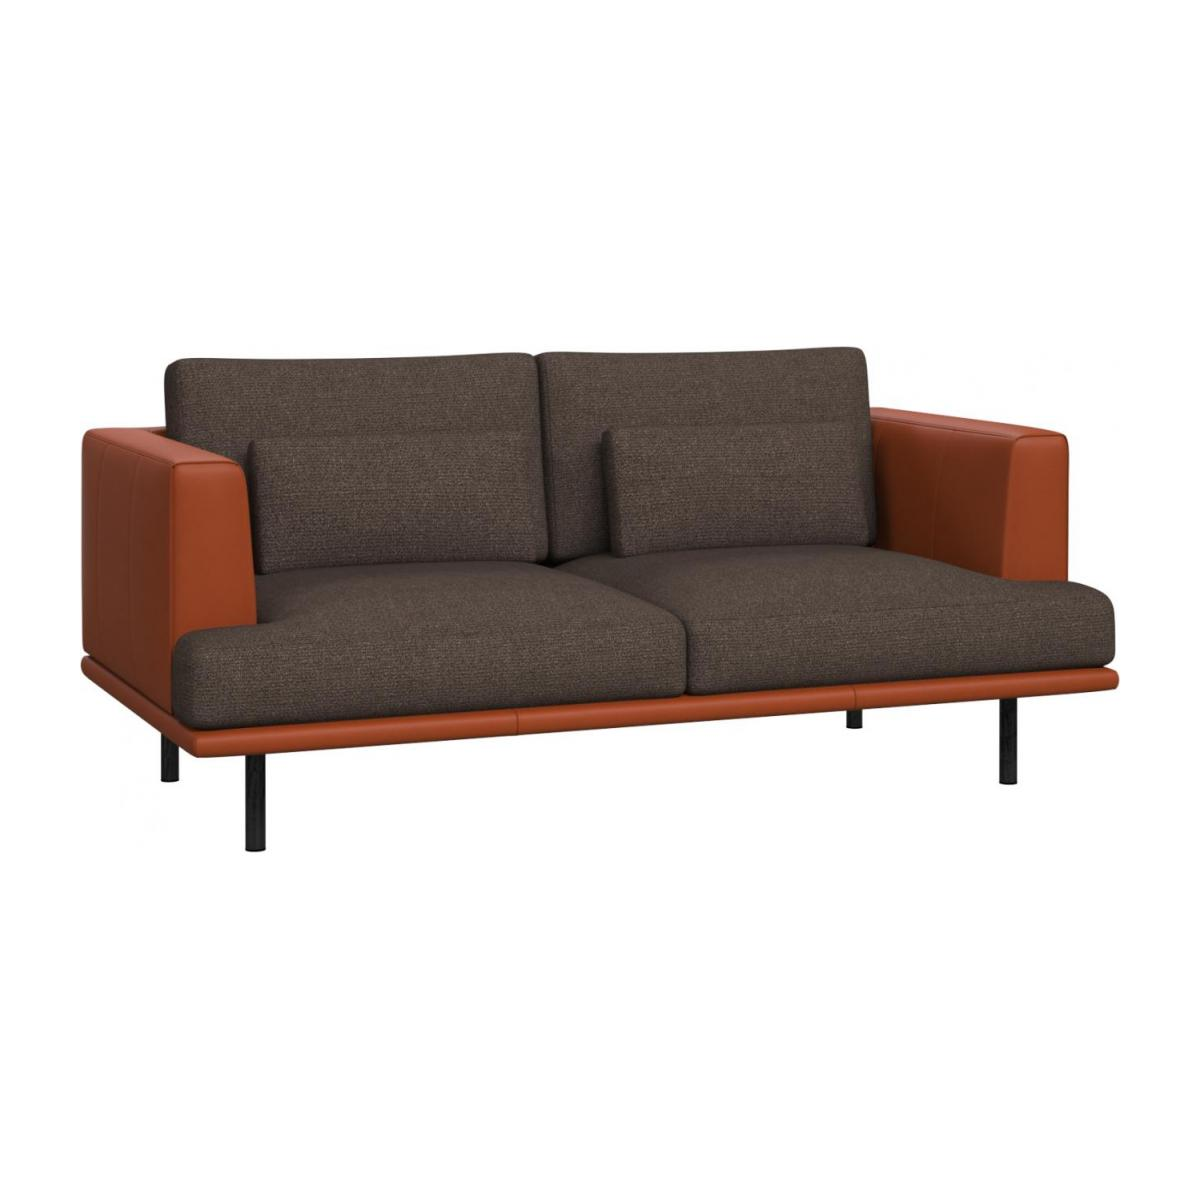 2 seater sofa in Lecce fabric, muscat with base and armrests in brown leather n°1